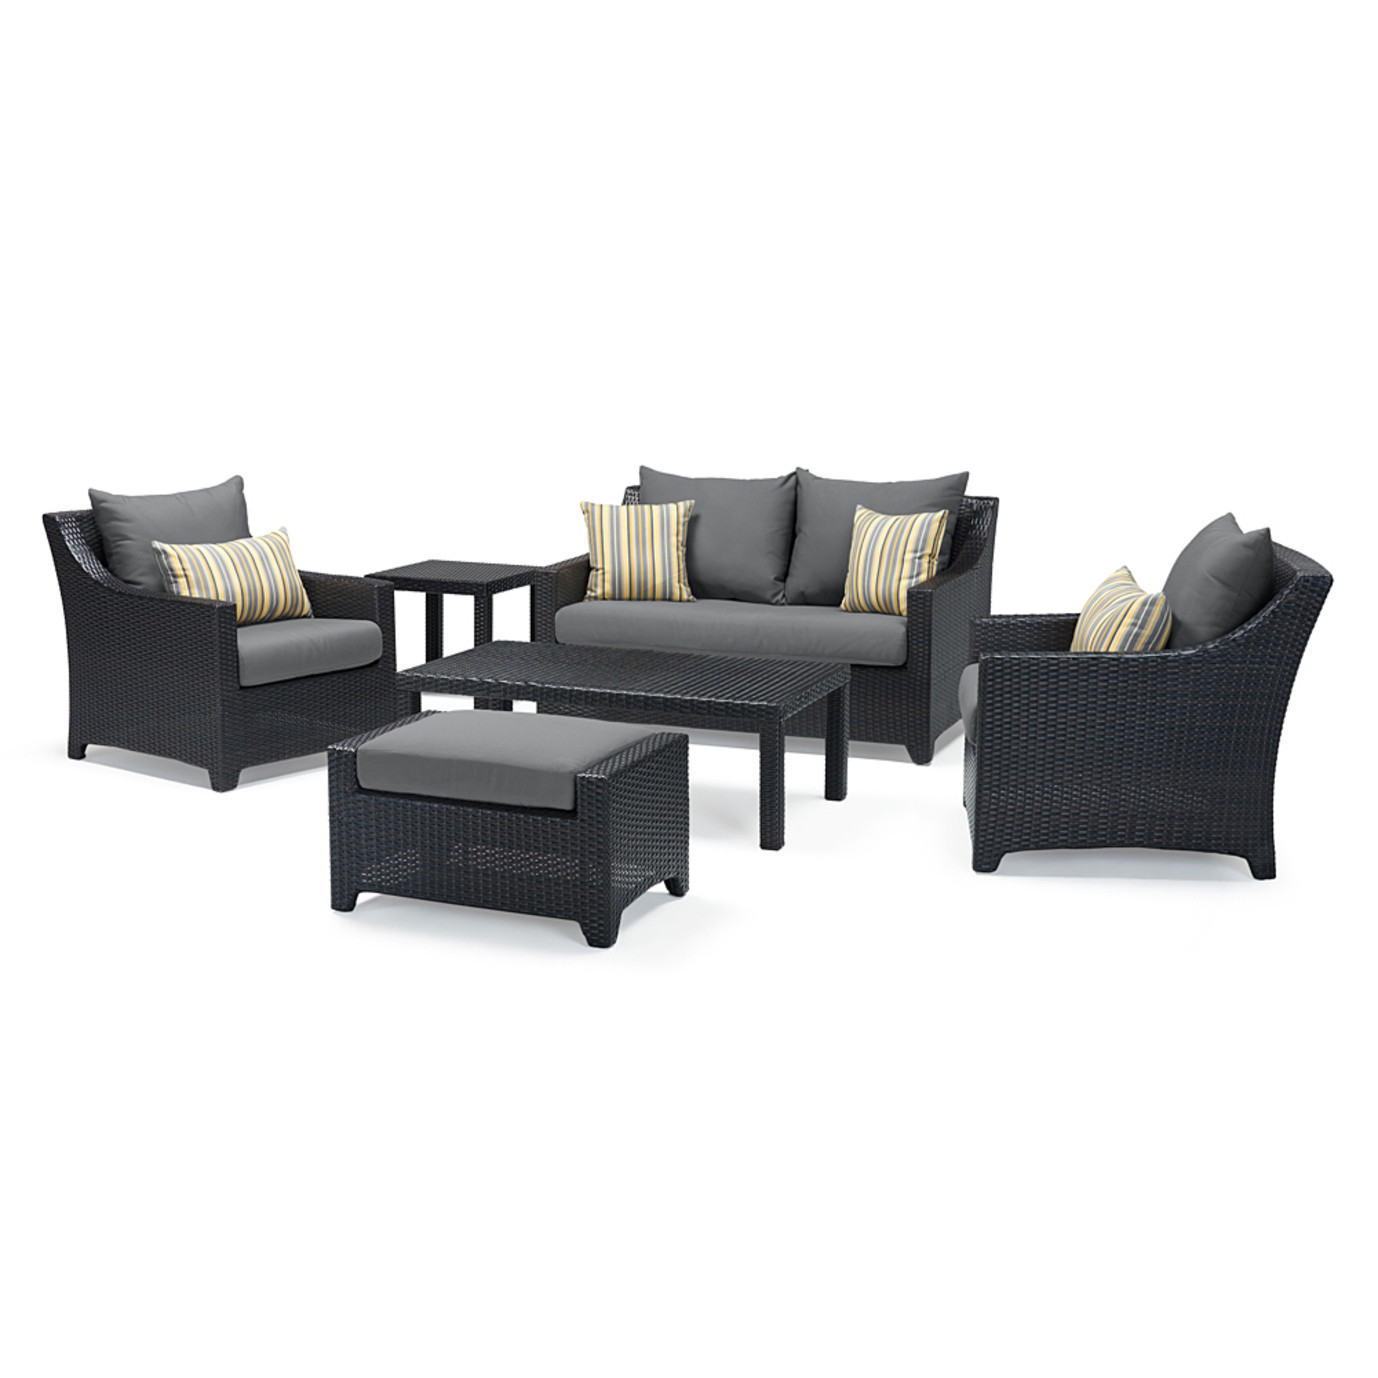 Deco™ 6 Piece Love and Club Seating Set - Charcoal Gray